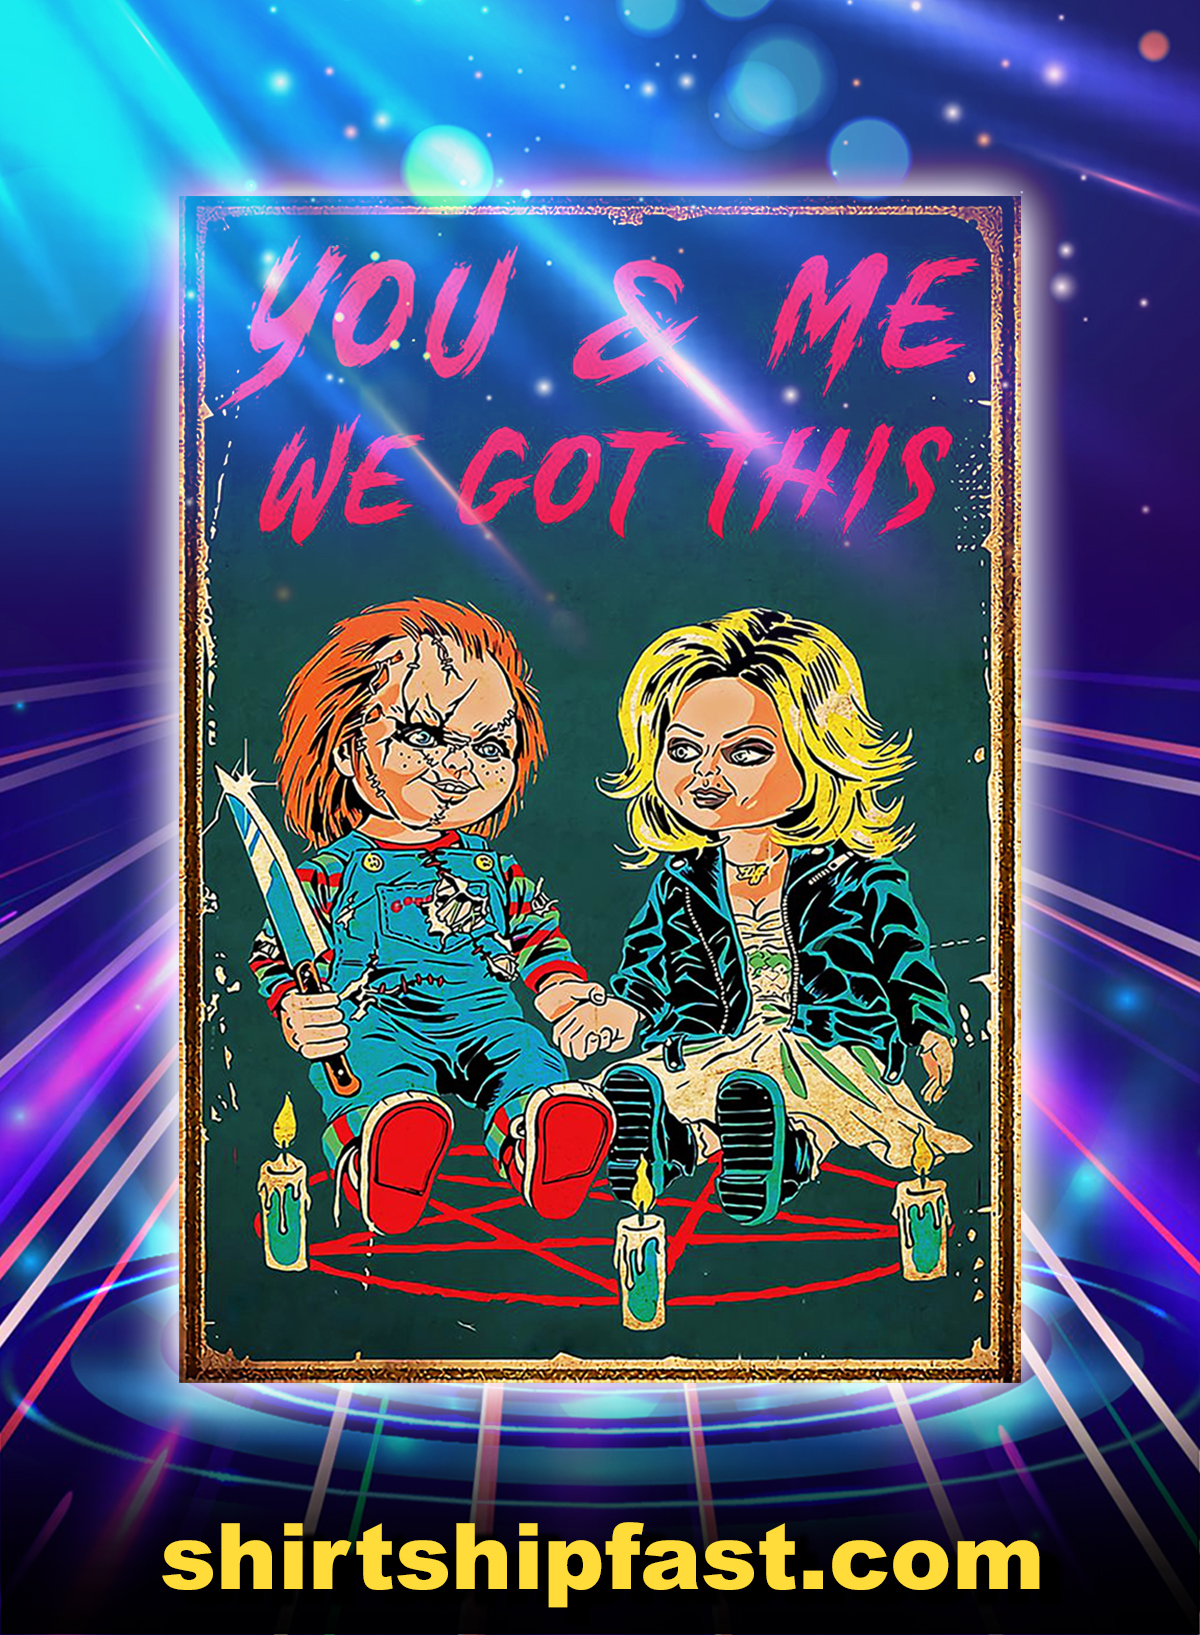 Chucky and tiffany you and me we got this poster - A1